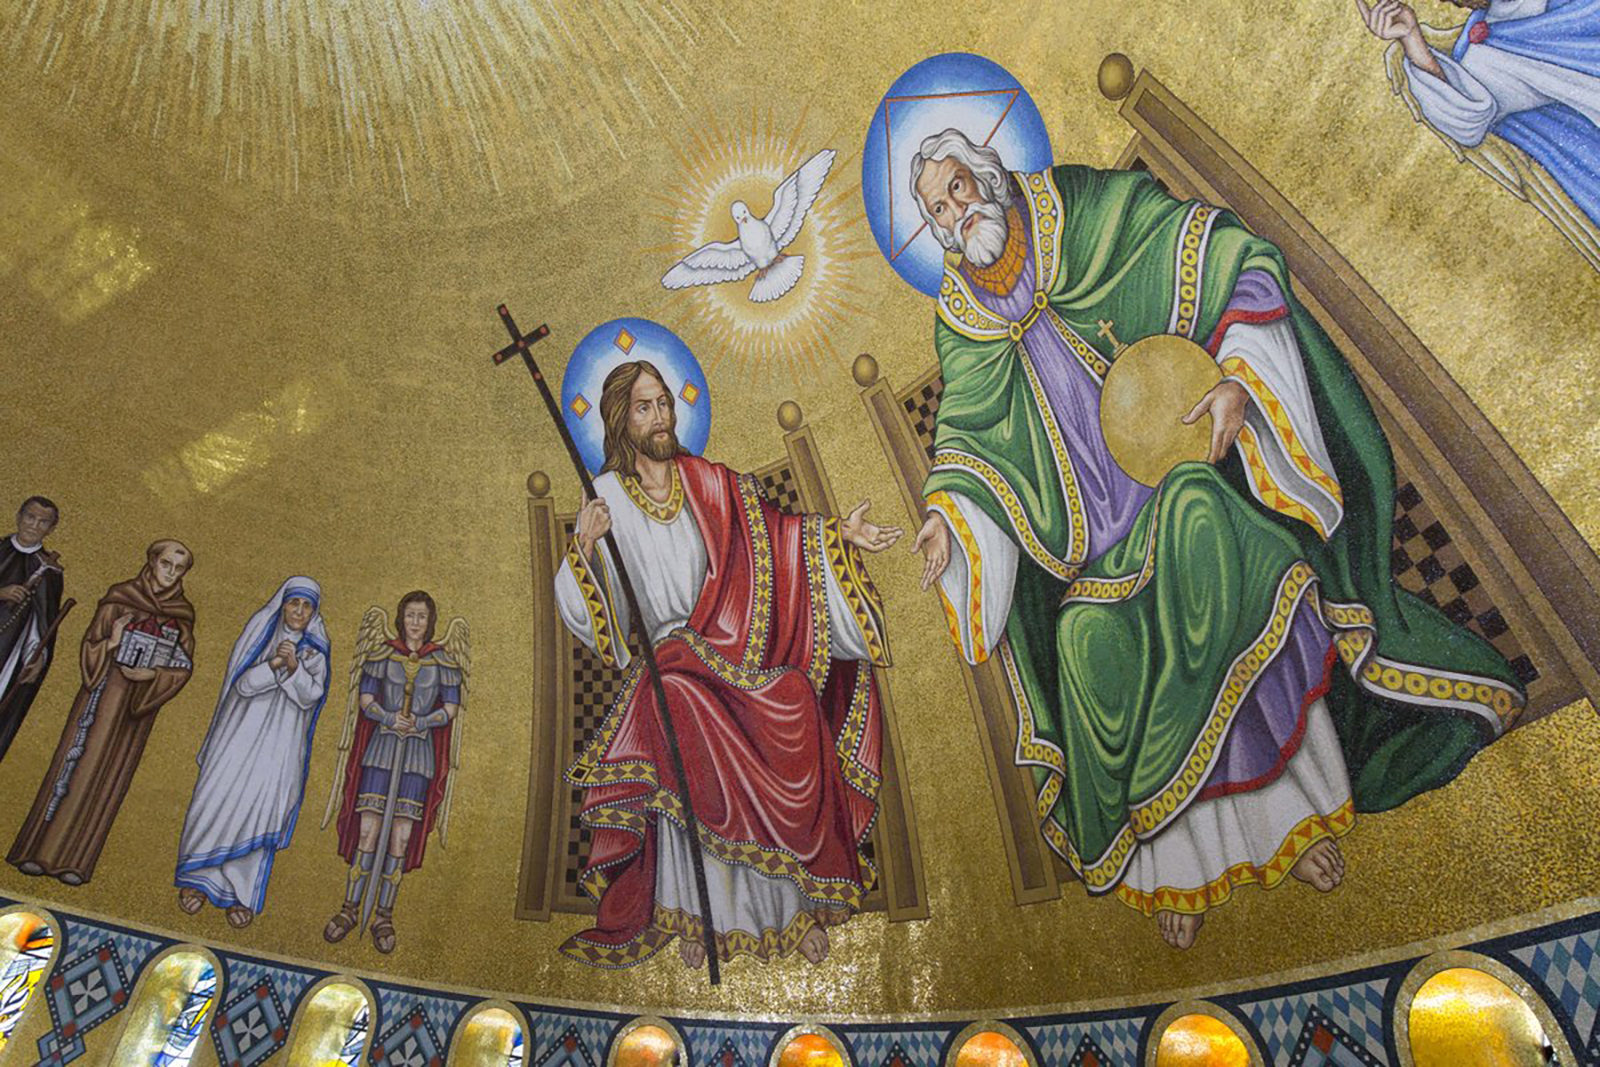 Image courtesy of the Basilica of the National Shrine of the Immaculate Conception